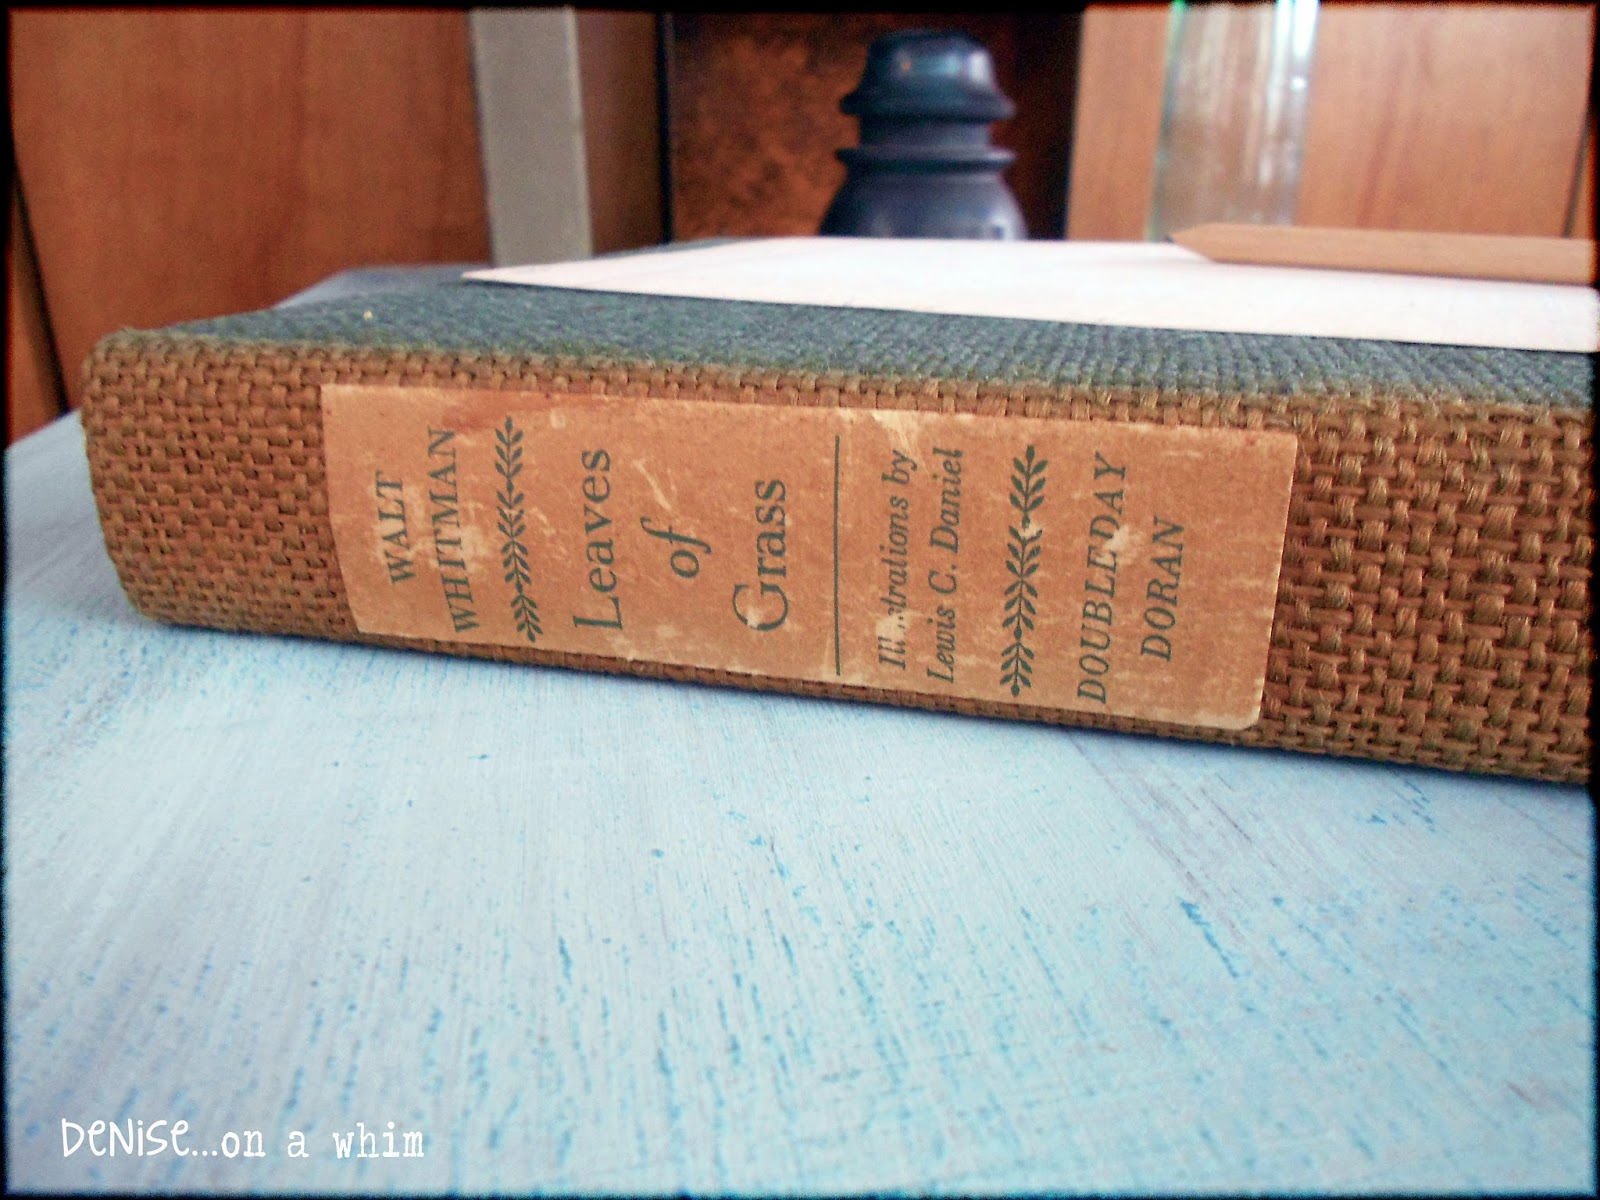 Vintage copy of Leaves of Grass with sun-faded binding via http://deniseonawhim.blogspot.com